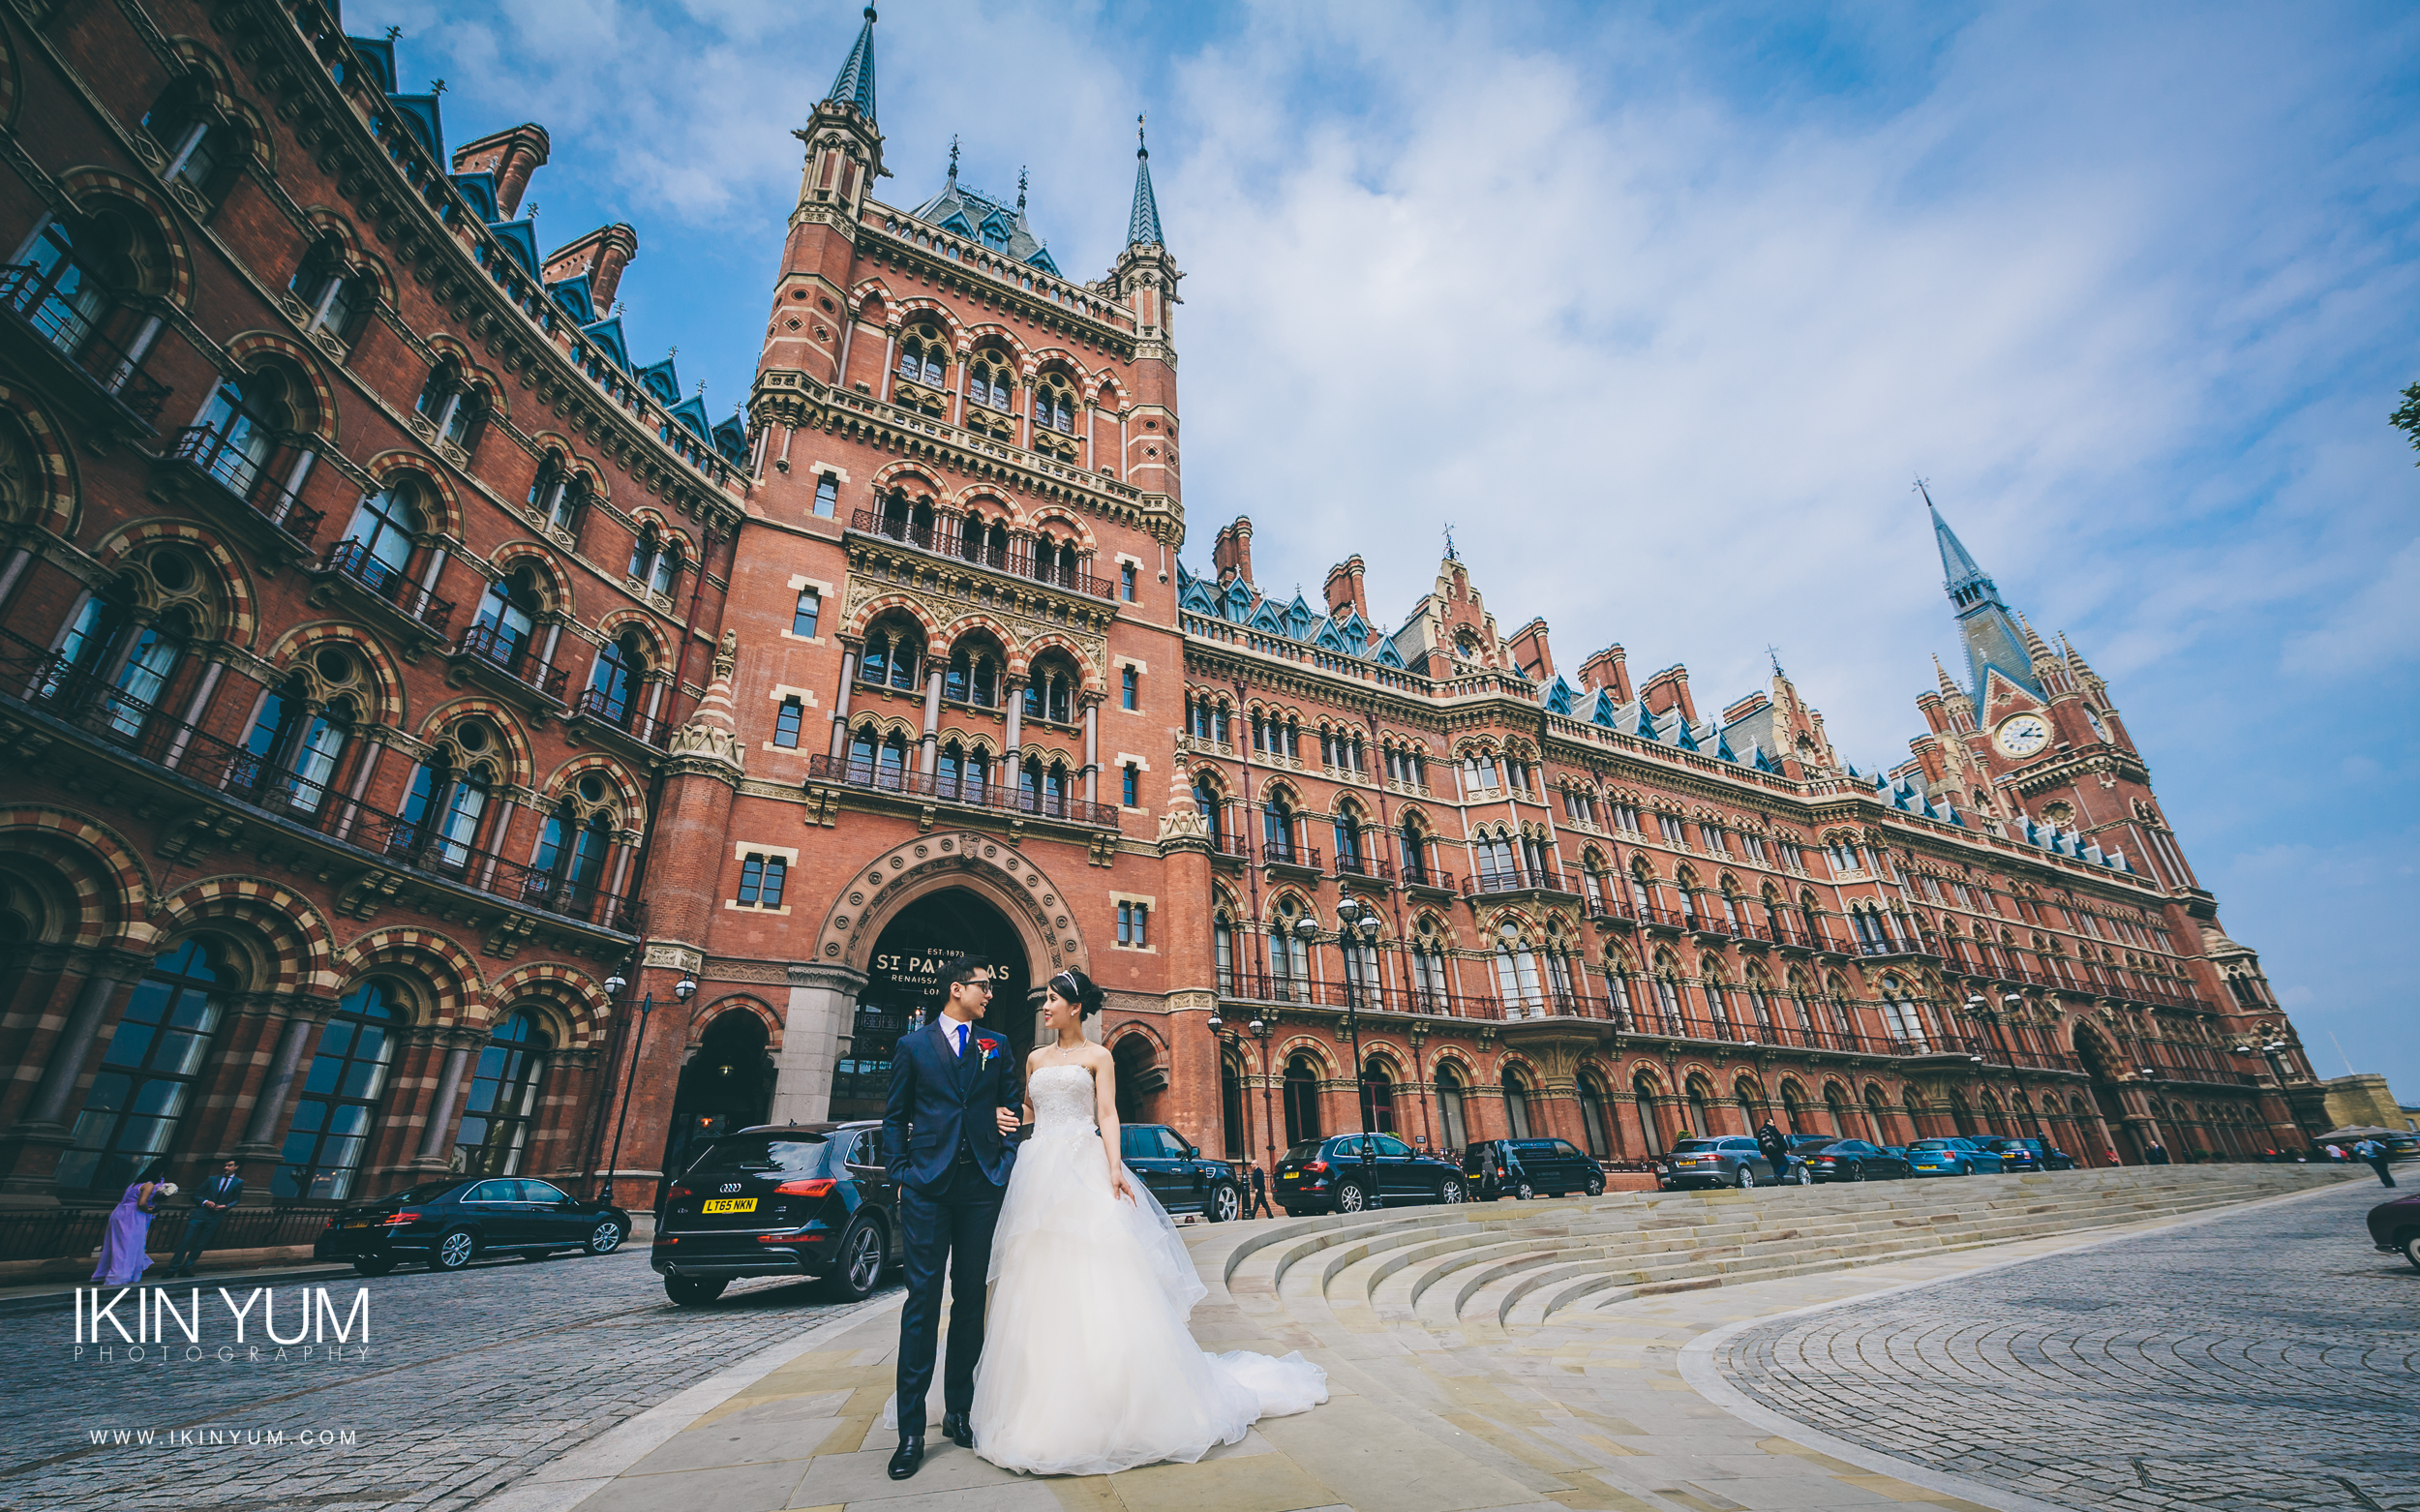 St Pancras Renaissance Hotel - Wedding - Ikin Yum Photography-061.jpg